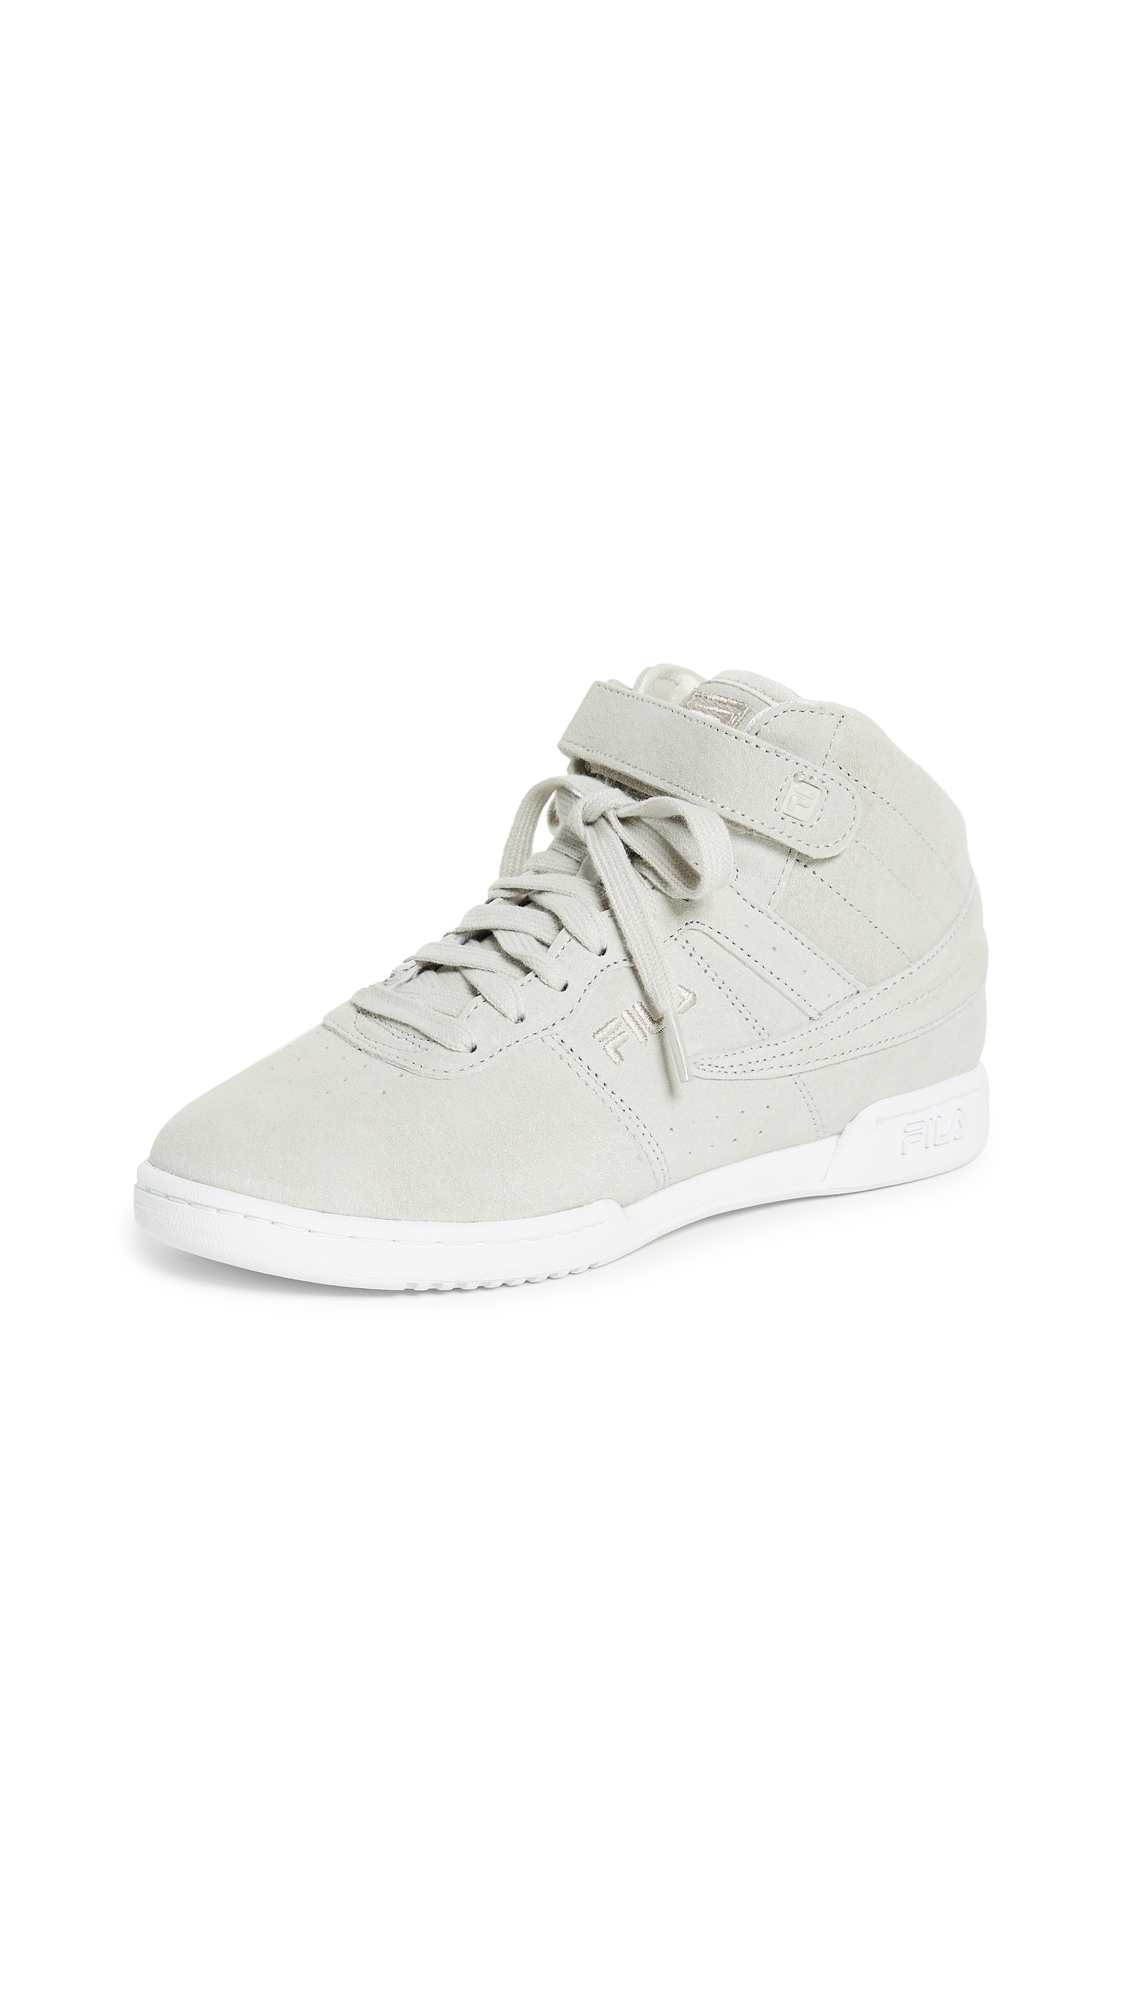 Fila F-13 Sneakers - Cream/White